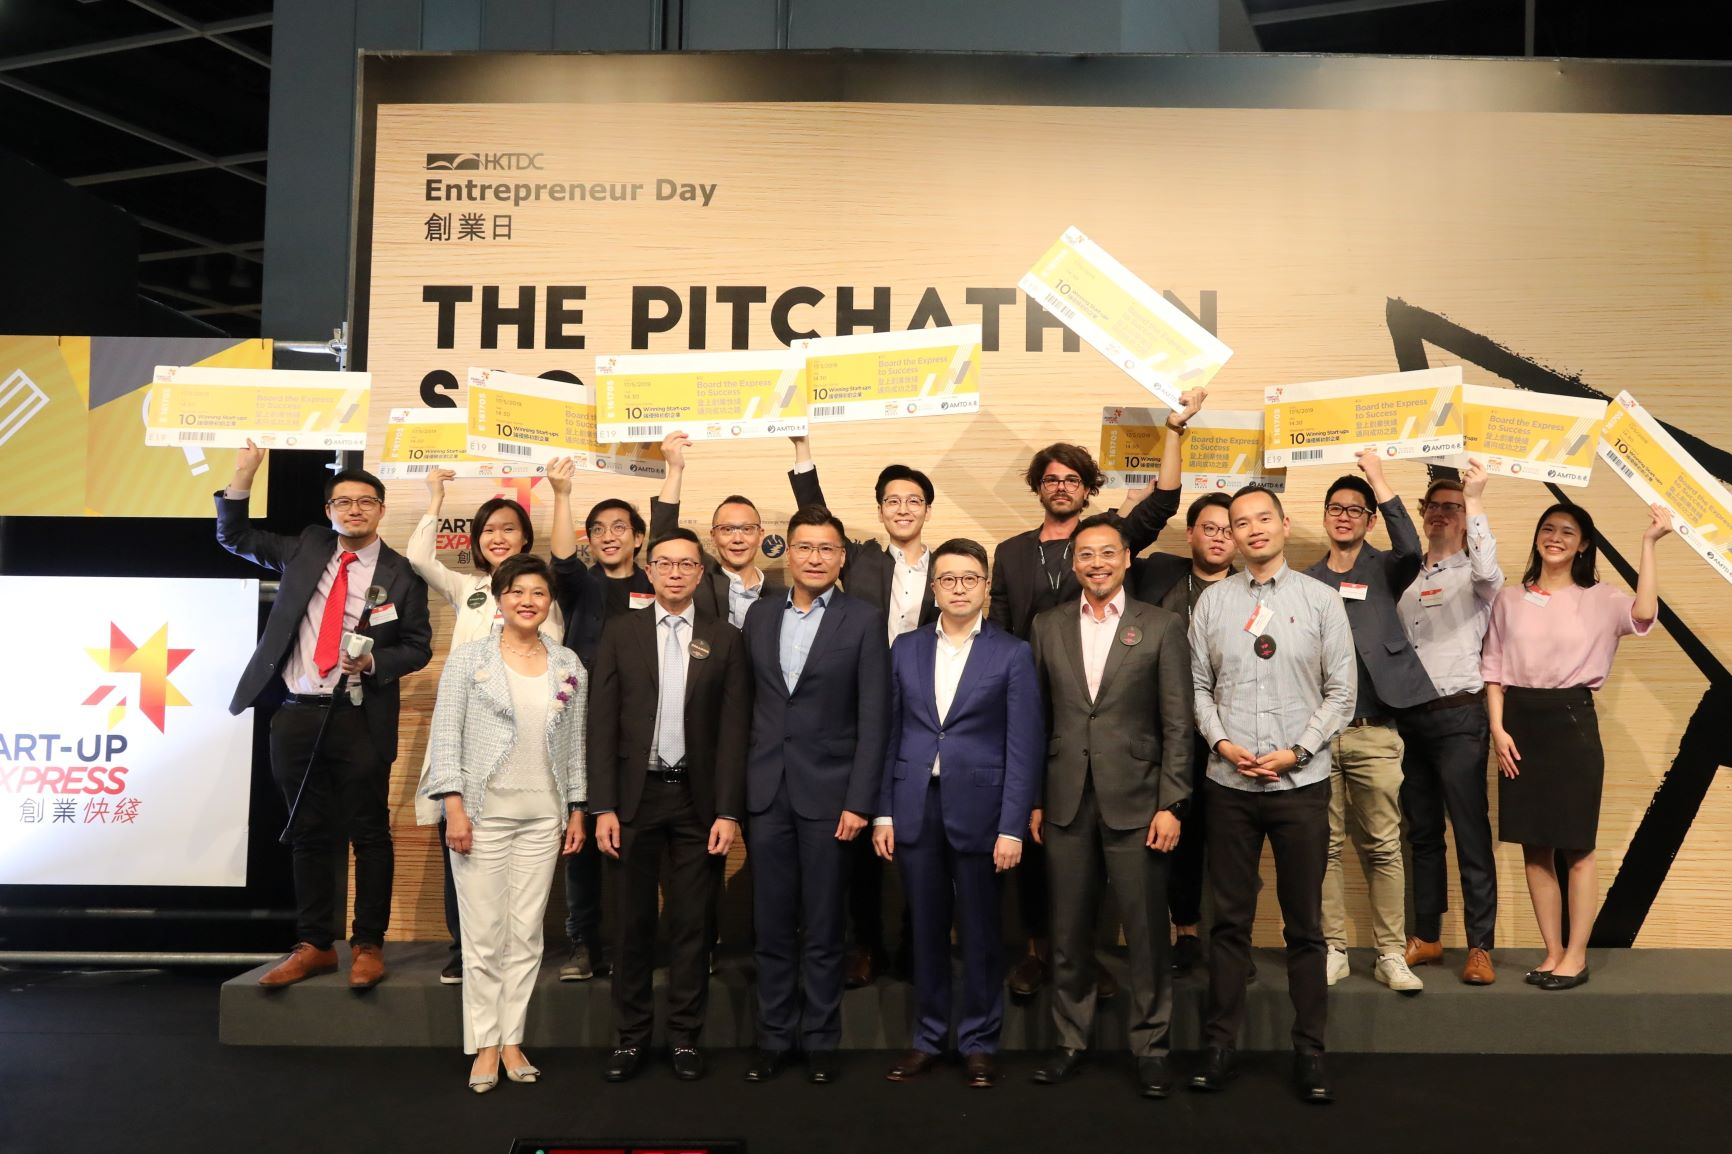 AMTD Group hosted the second Start-up Express Pitching Final jointly with HKTDC and Our Hong Kong Foundation